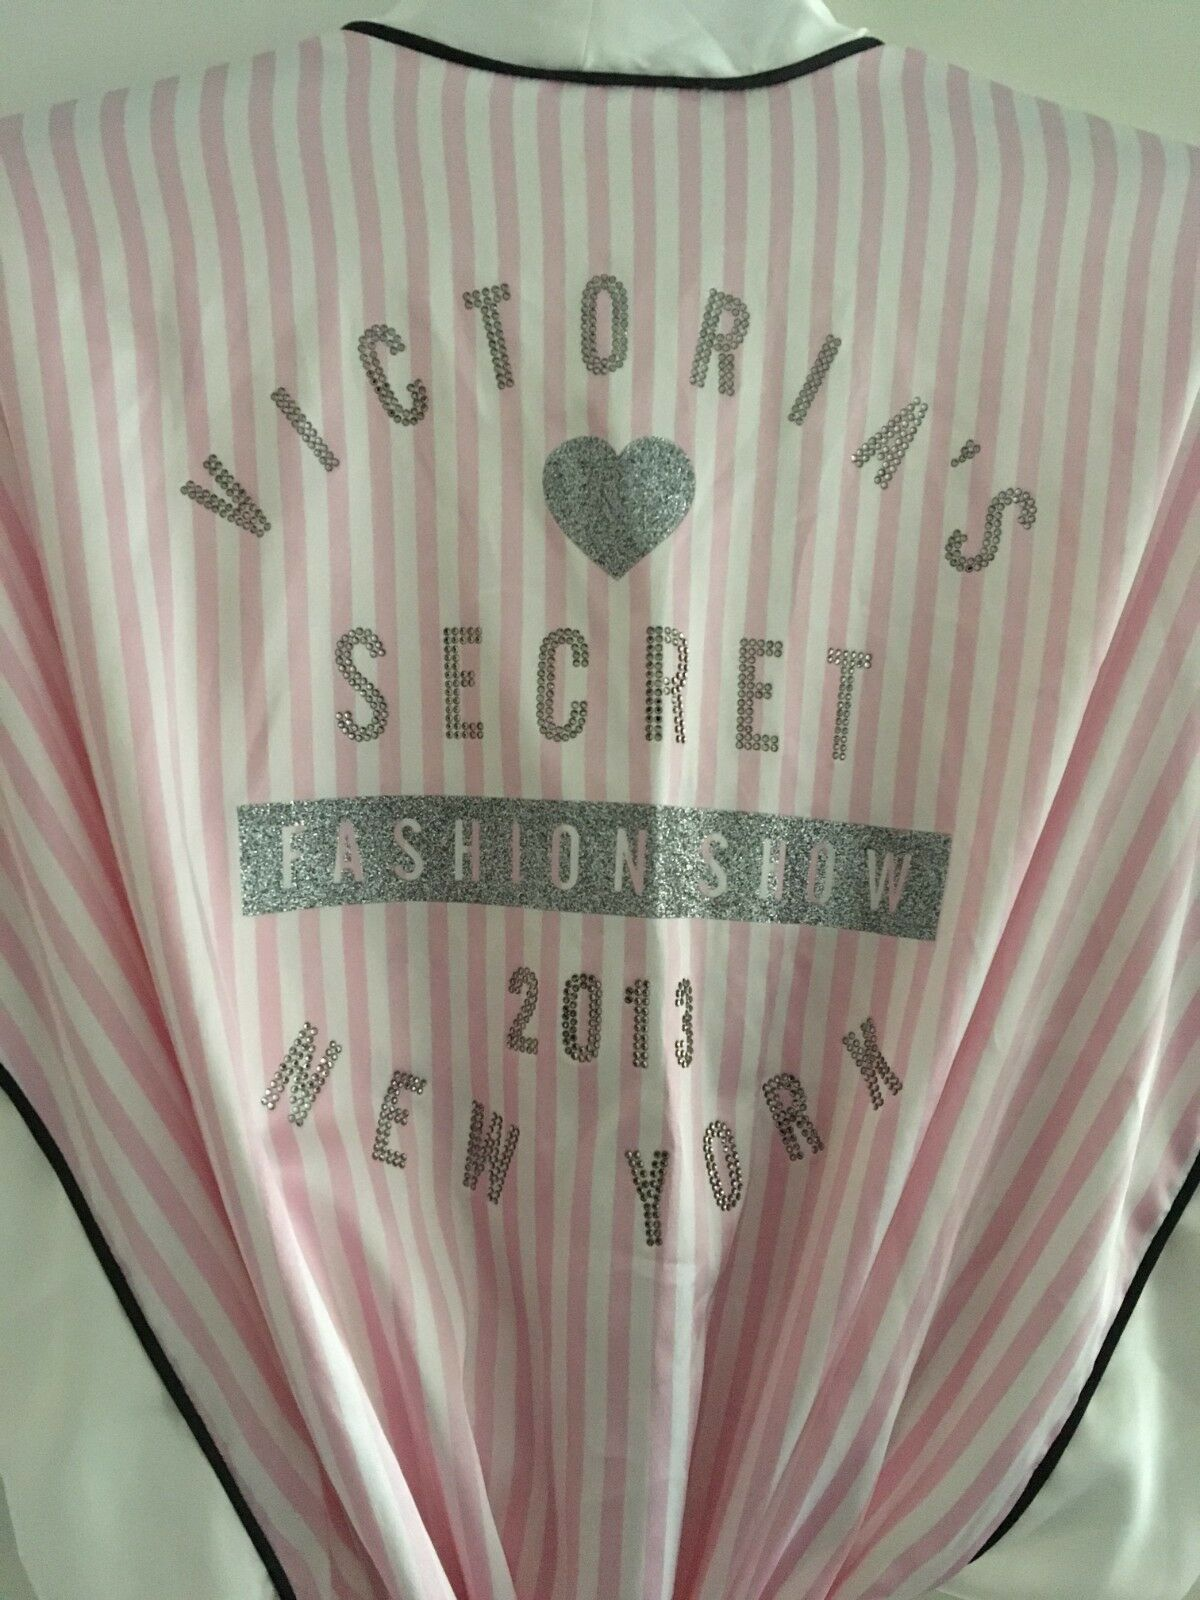 Victoria's Secret Fashion Show 2013 Dressing Gown. Limited Edition. One Size.